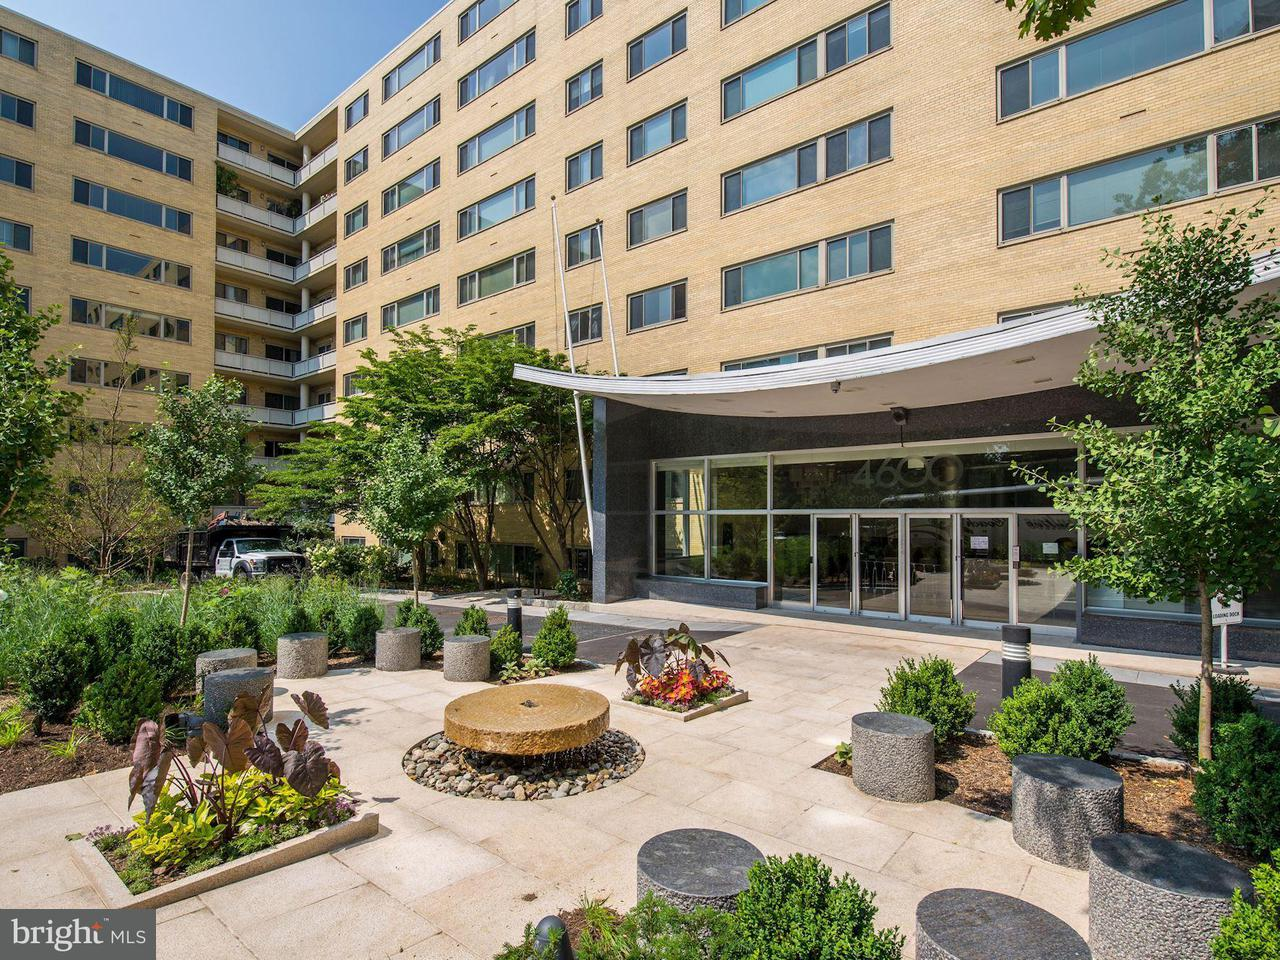 Single Family Home for Sale at 4600 CONNECTICUT AVE NW #109 4600 CONNECTICUT AVE NW #109 Washington, District Of Columbia 20008 United States